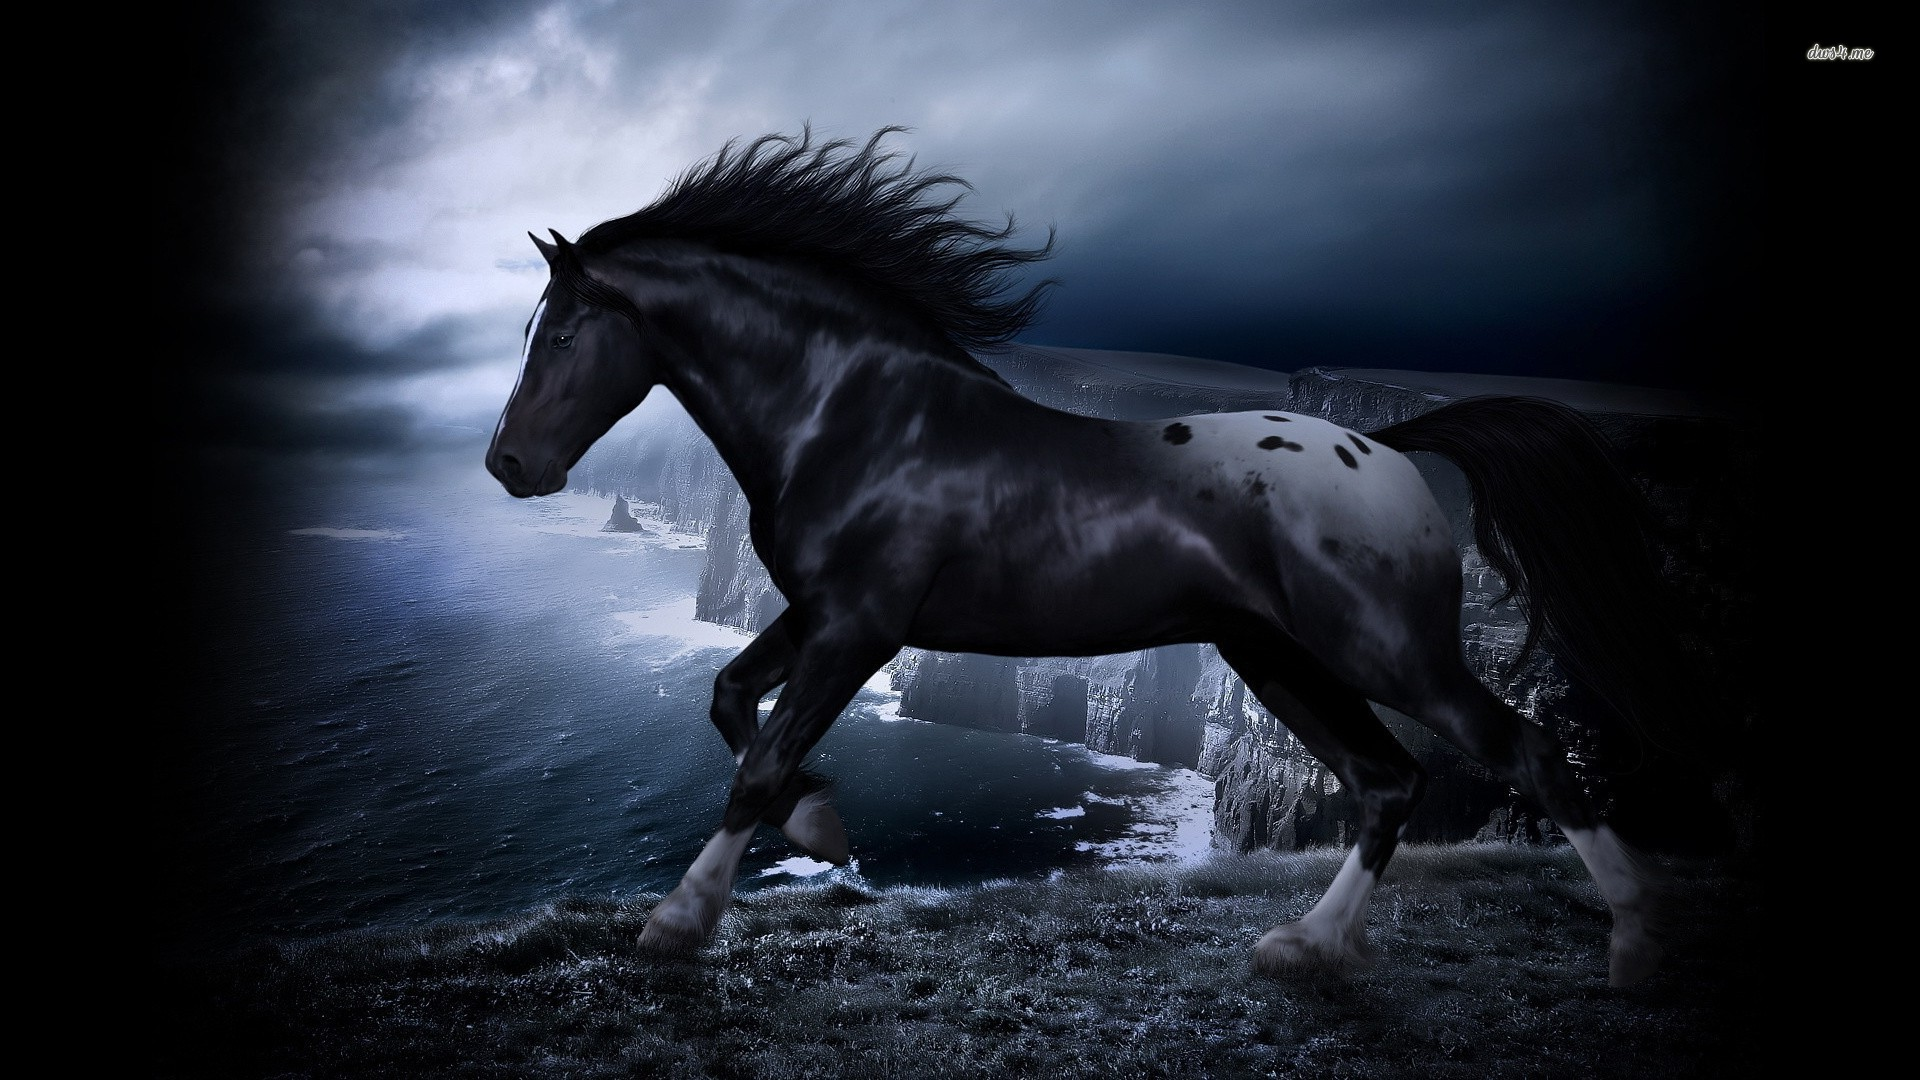 Black Horse Art Wallpaper 1920x1080 11862